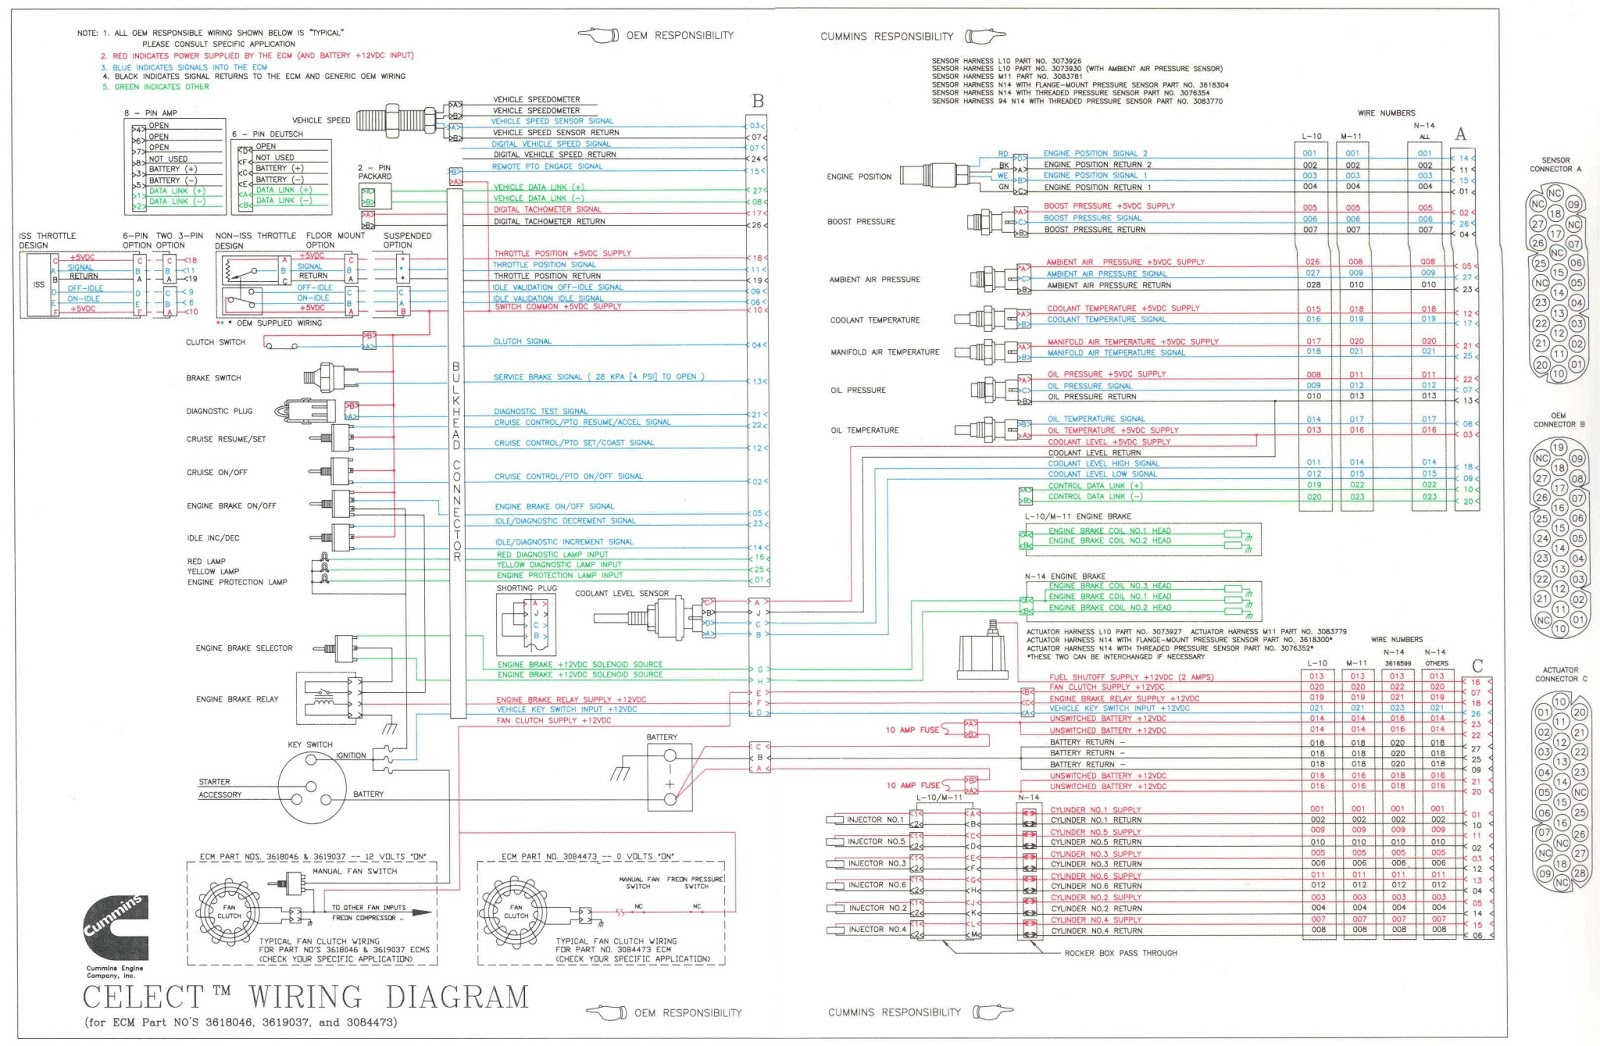 Gallery Of N14 mins Ecm Wiring Diagram Sample on snatch block diagrams, lighting diagrams, honda motorcycle repair diagrams, switch diagrams, led circuit diagrams, motor diagrams, friendship bracelet diagrams, electrical diagrams, smart car diagrams, hvac diagrams, transformer diagrams, troubleshooting diagrams, series and parallel circuits diagrams, sincgars radio configurations diagrams, electronic circuit diagrams, engine diagrams, pinout diagrams, gmc fuse box diagrams, internet of things diagrams, battery diagrams,